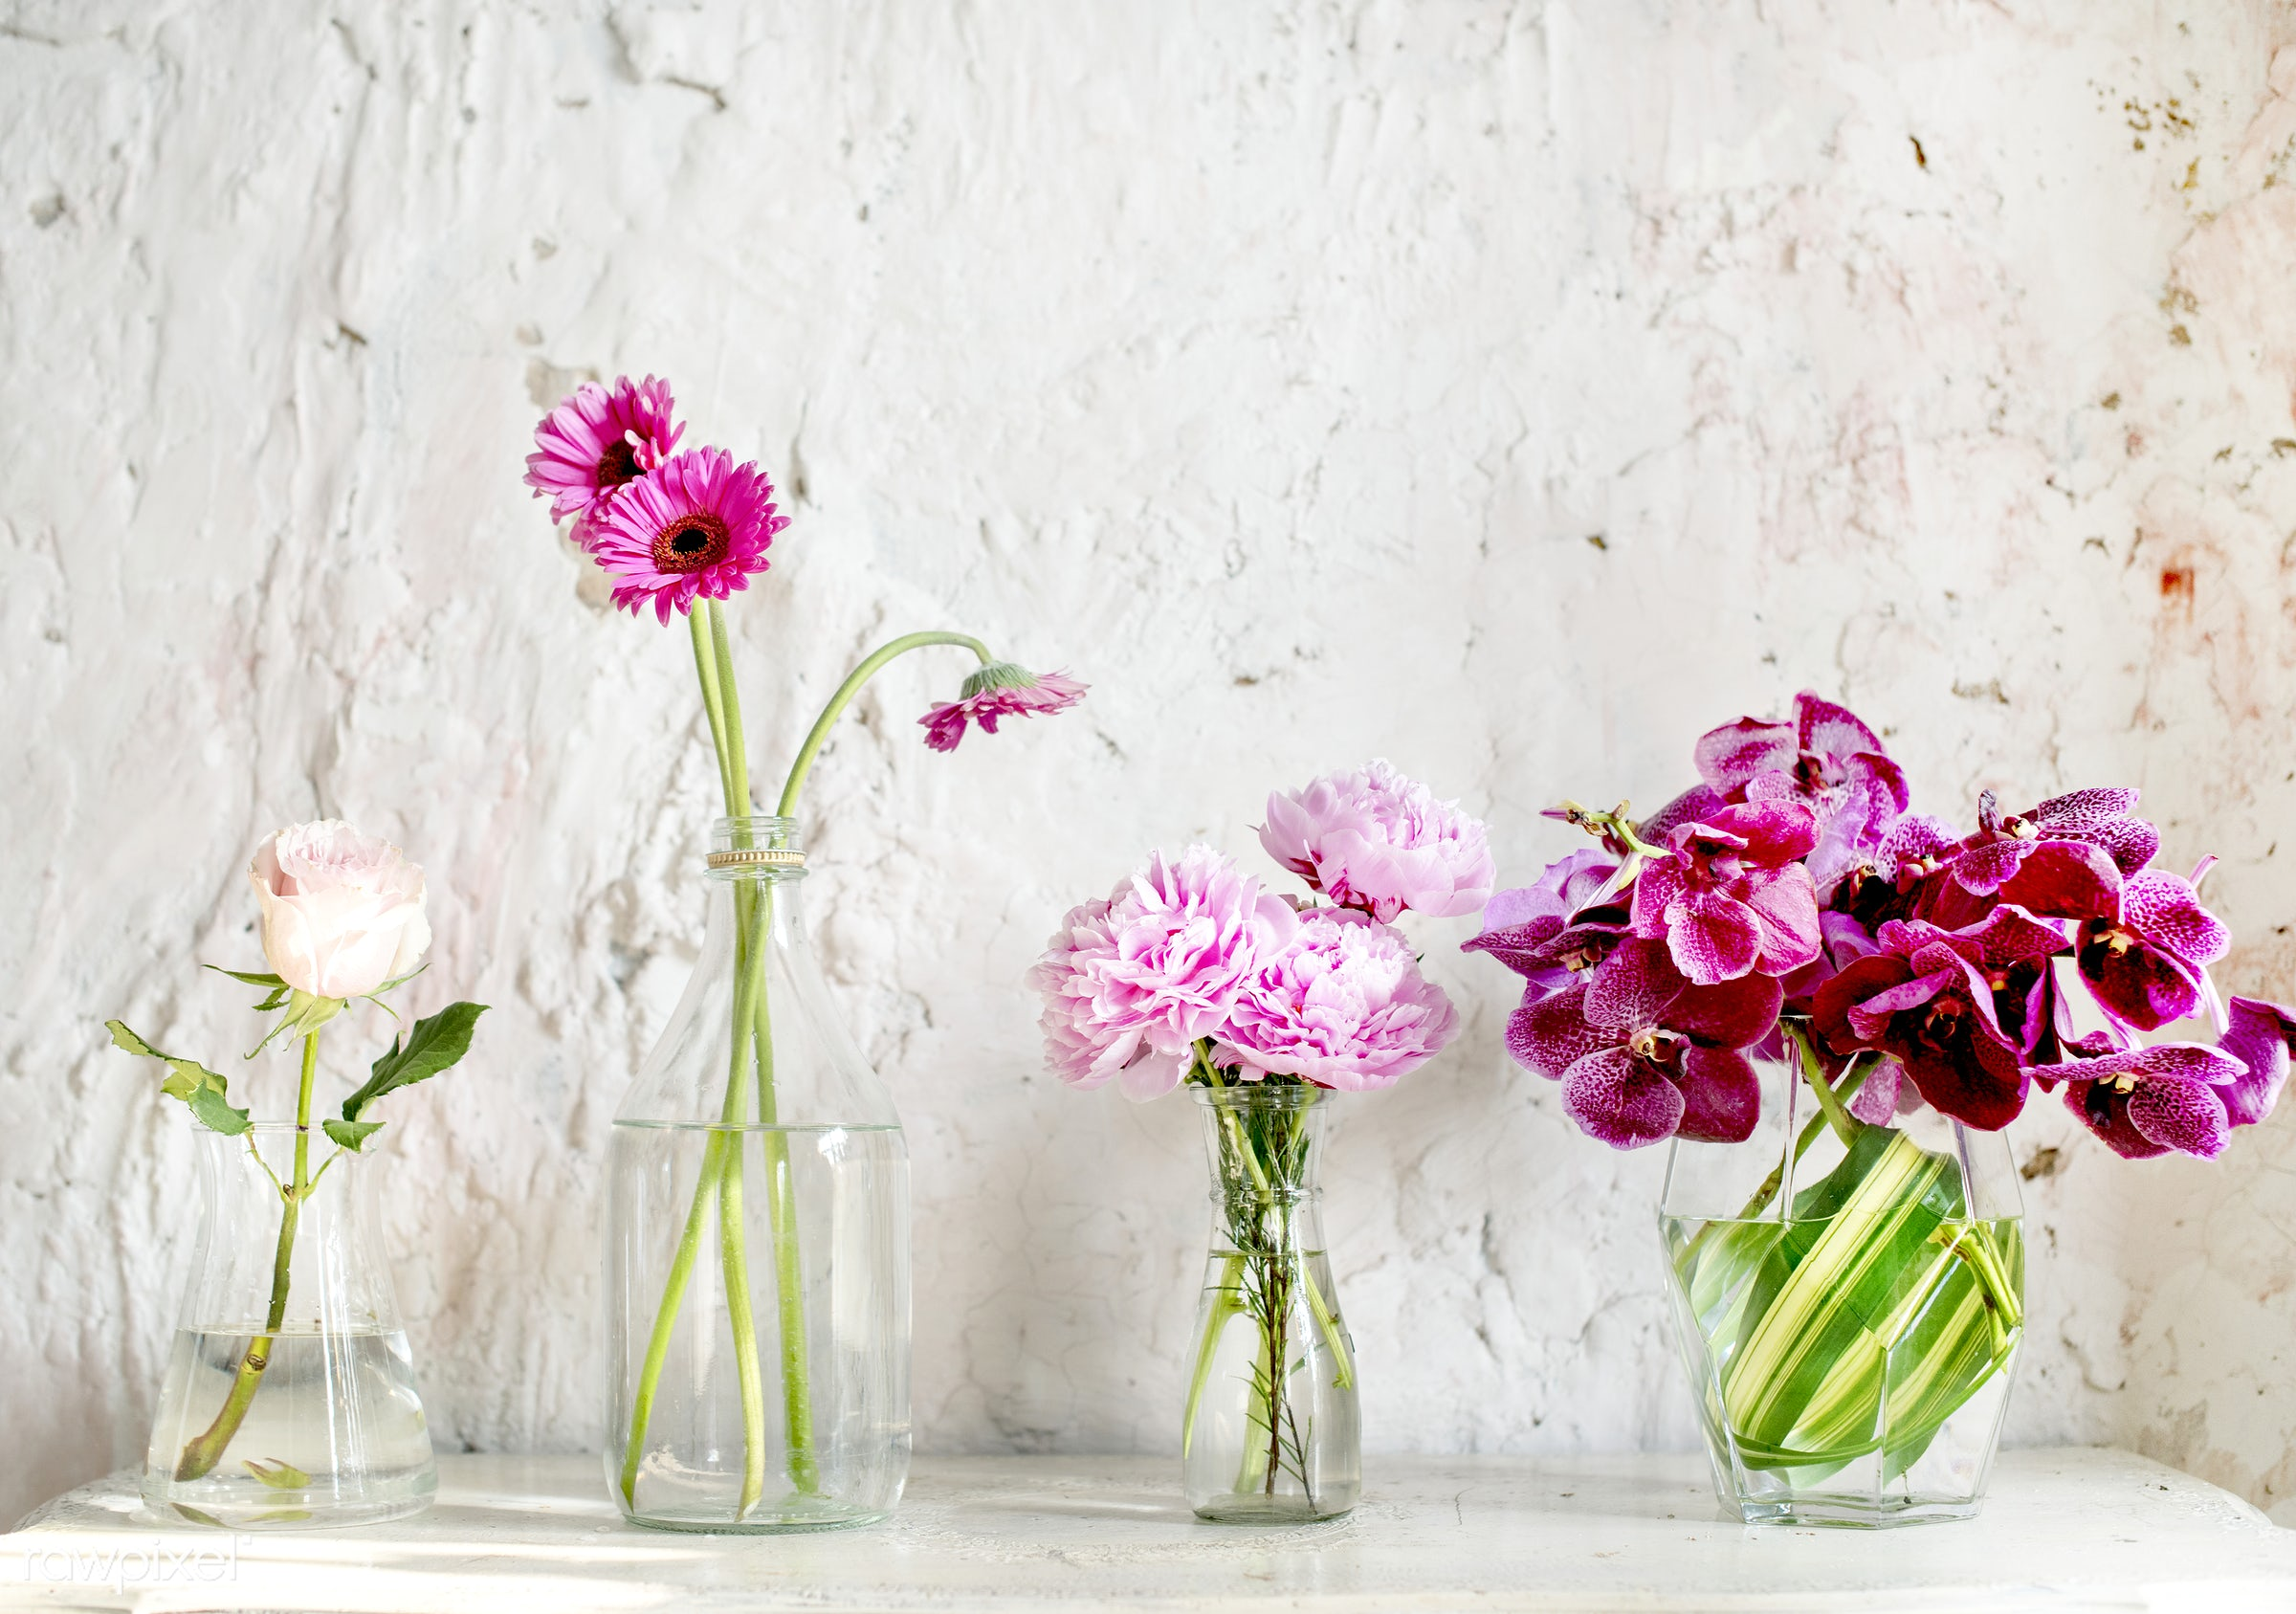 A row of vases with pink flowers - single, indoor, romance, spring, blossom, style, glass, flower, vase, vintage, blooming,...